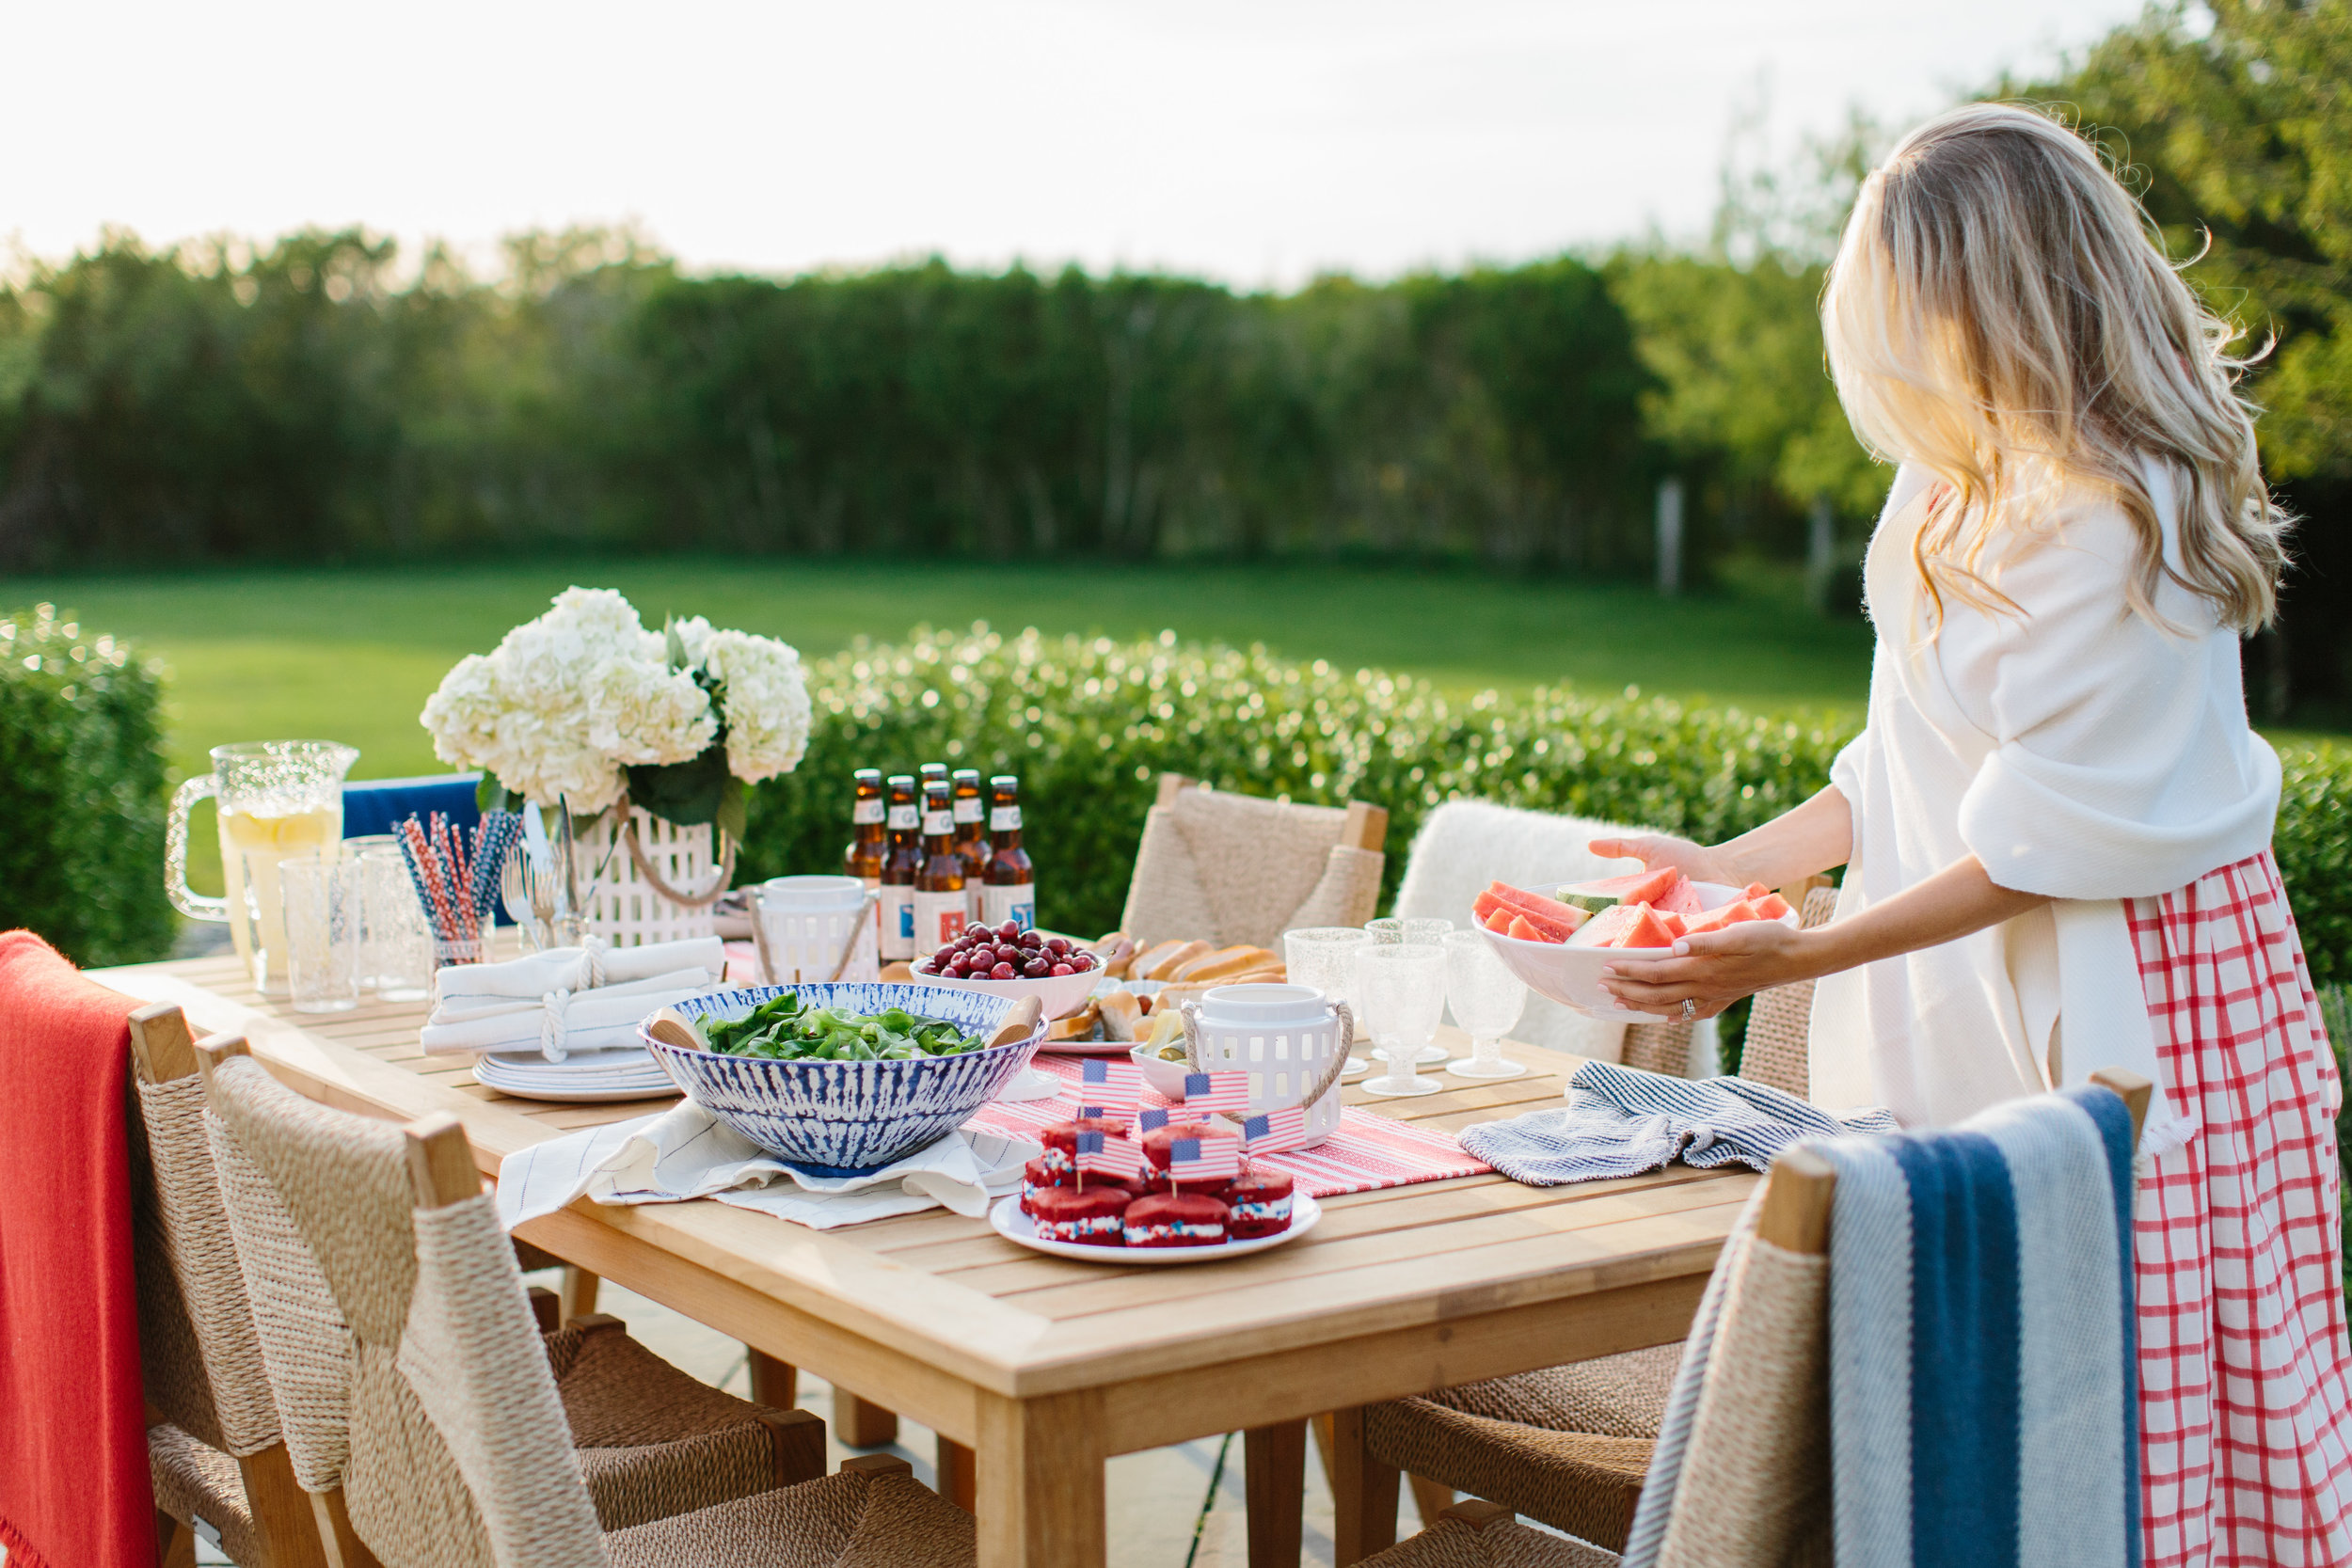 New England Fourth of July Nantucket Looms Coastal Living by Abby Capalbo | Photography: Erin McGinn